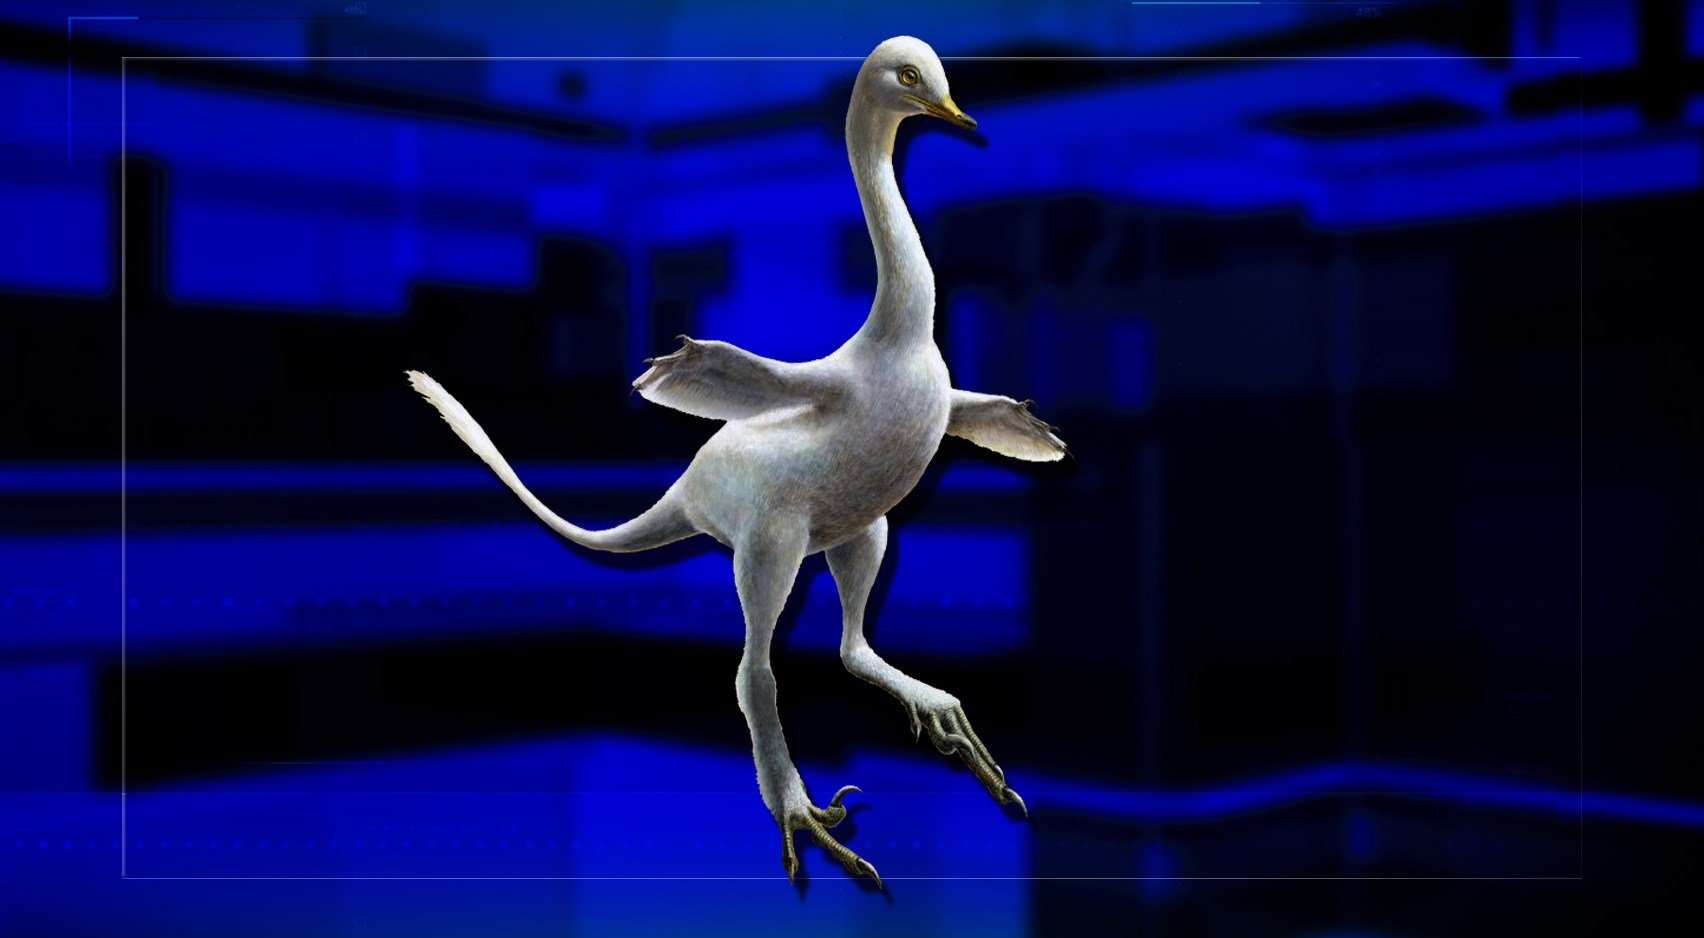 A new dinosaur named Halszkaraptor escuilliei looks more like a creation of Dr. Seuss than mother nature.